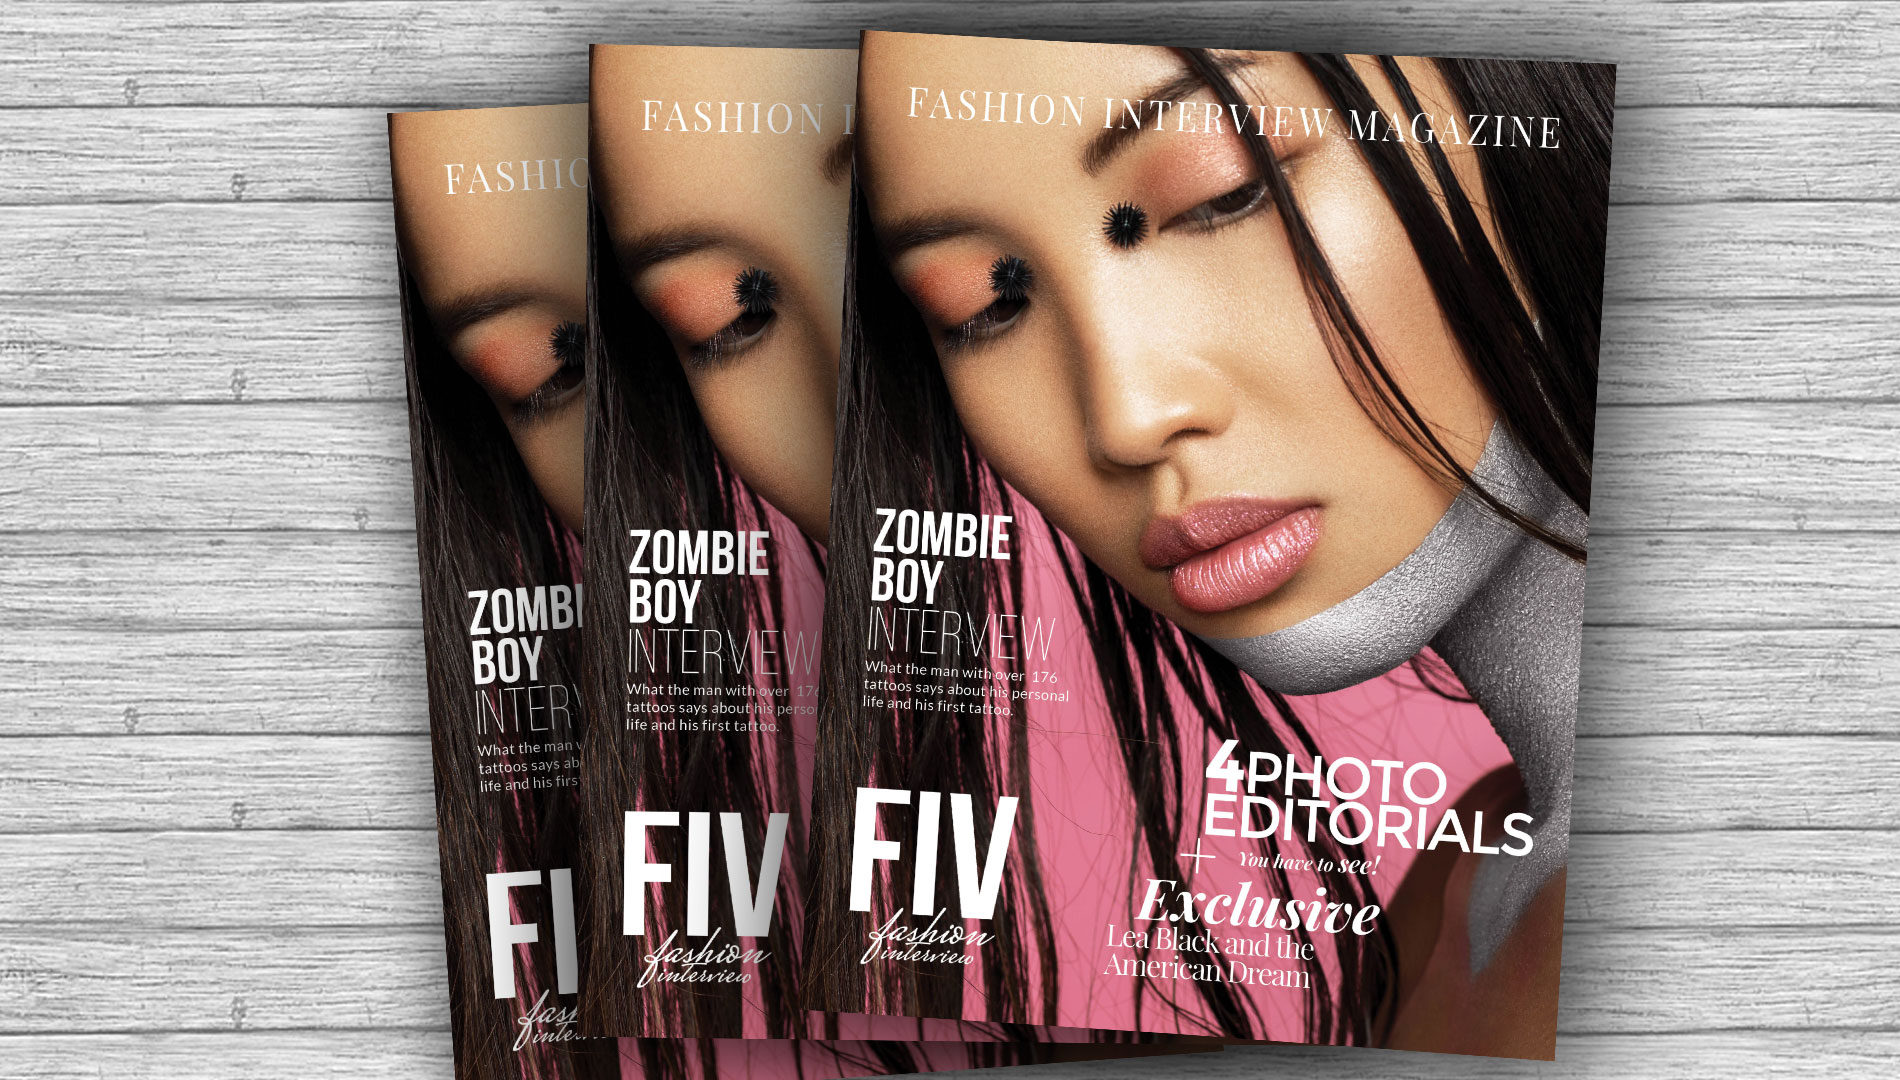 New Issue #2 exclusive interview with ZOMBIE BOY + 4 excusive editorials + Lea Black about her American Dream